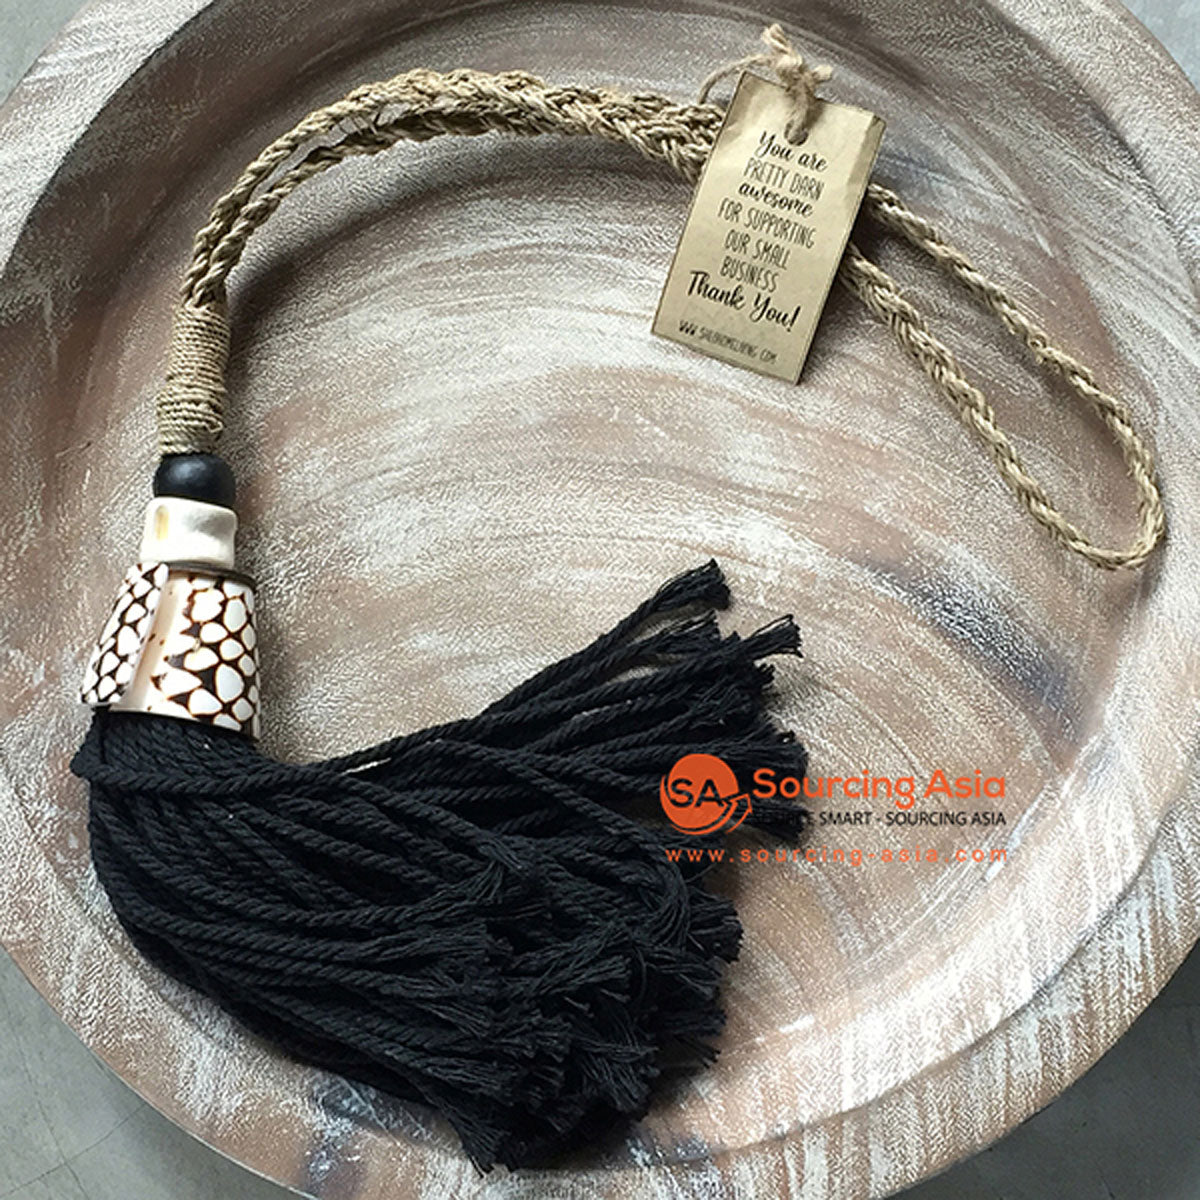 SHL047-7 NATURAL SHELL DECORATIVE TASSEL WITH MACRAME YARN